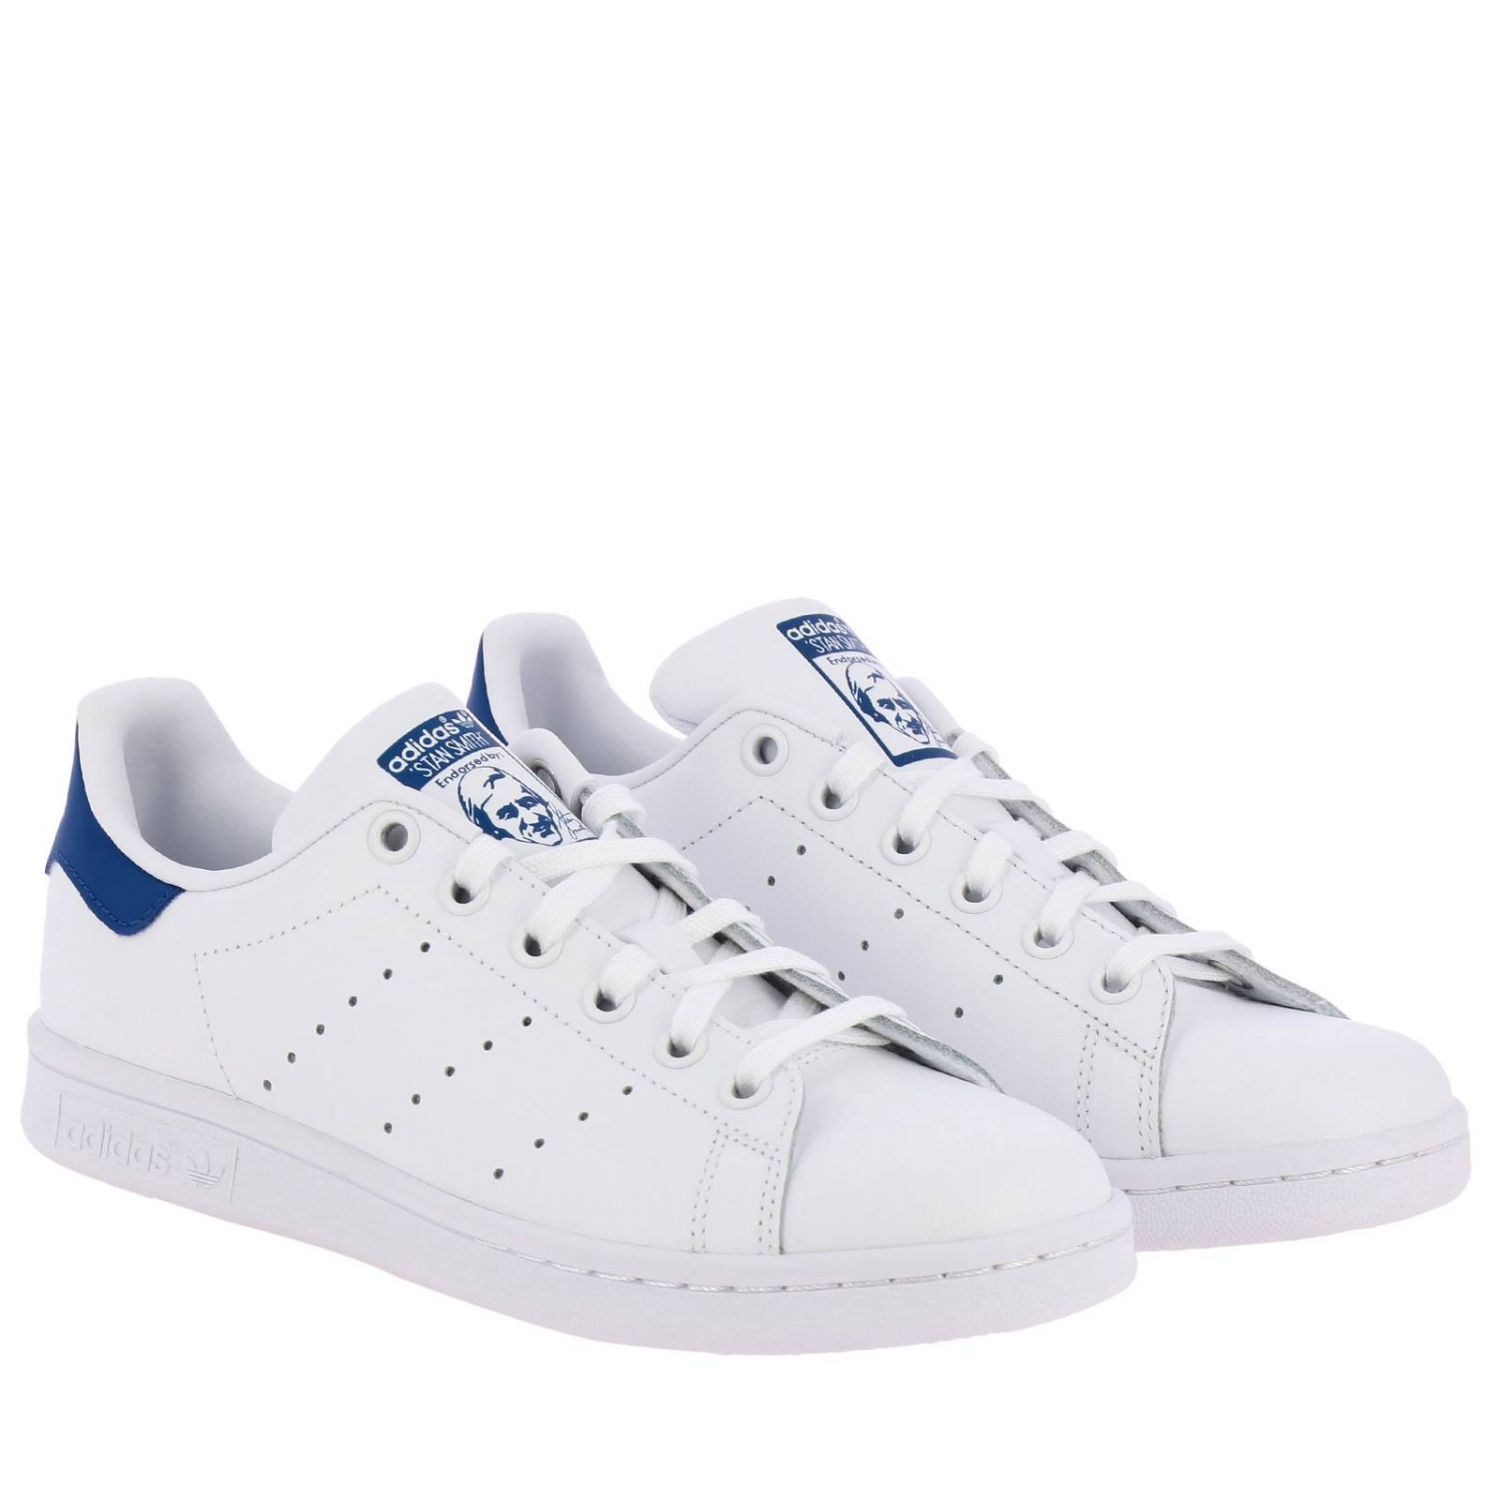 Zapatos Adidas Originals: Zapatillas Stan Smith J Adidas Originals de cuero con tacón en contraste blanco 2